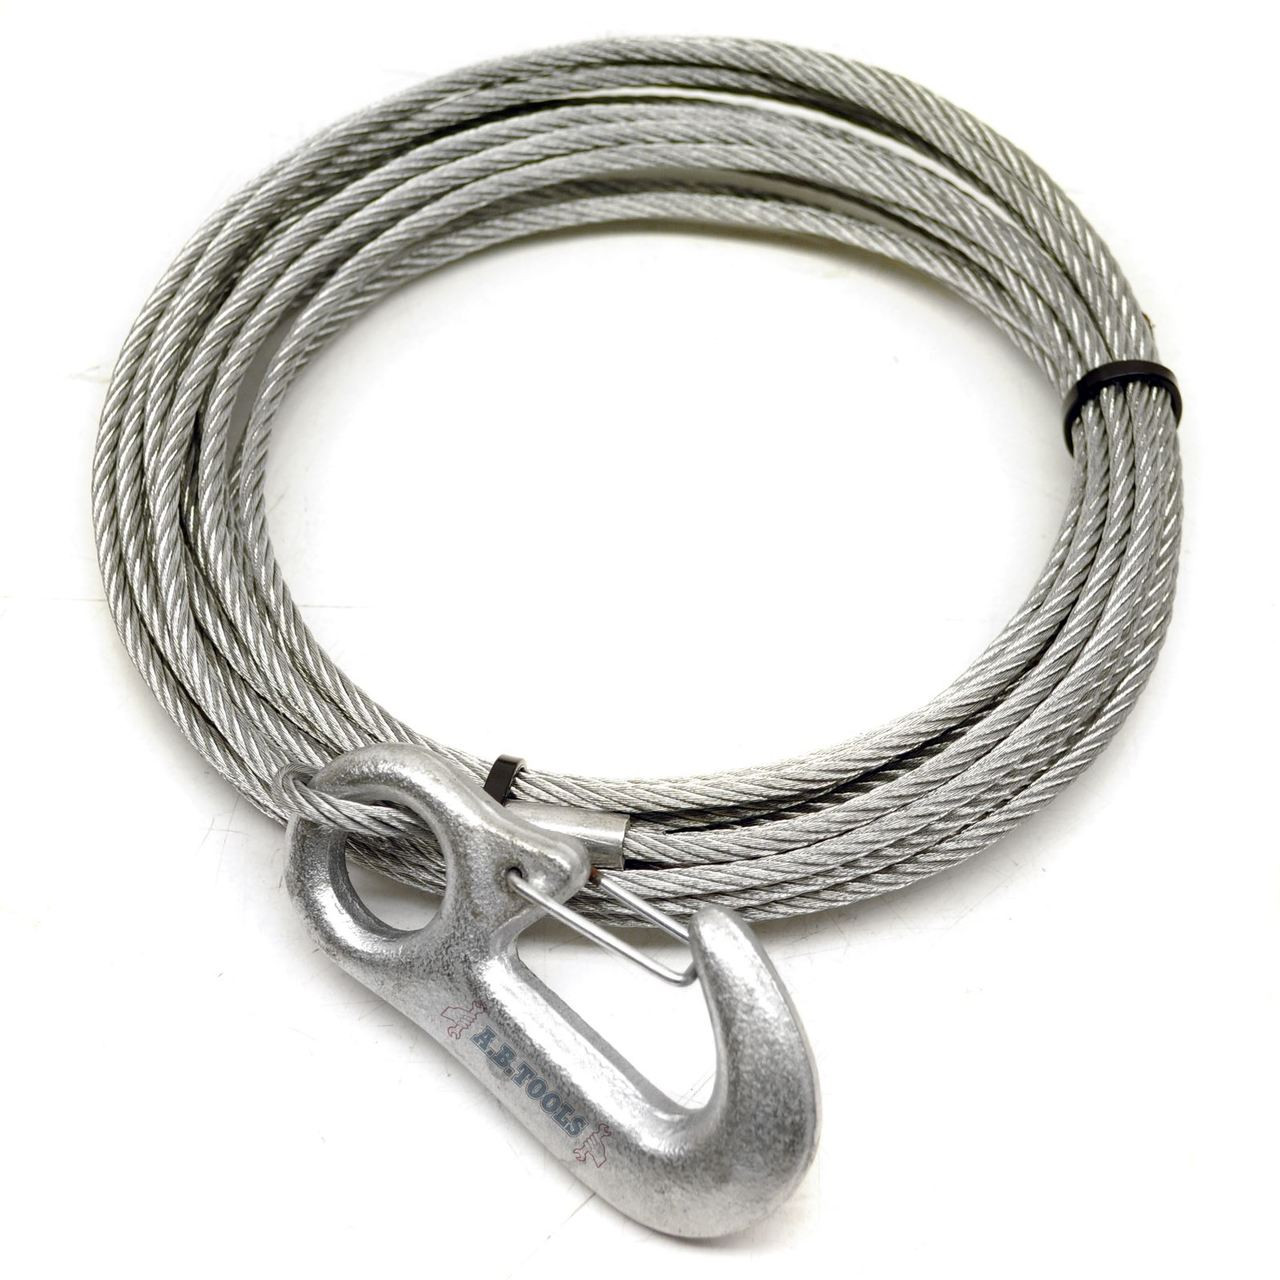 7m Galvanised Winch Cable with Hook TR148